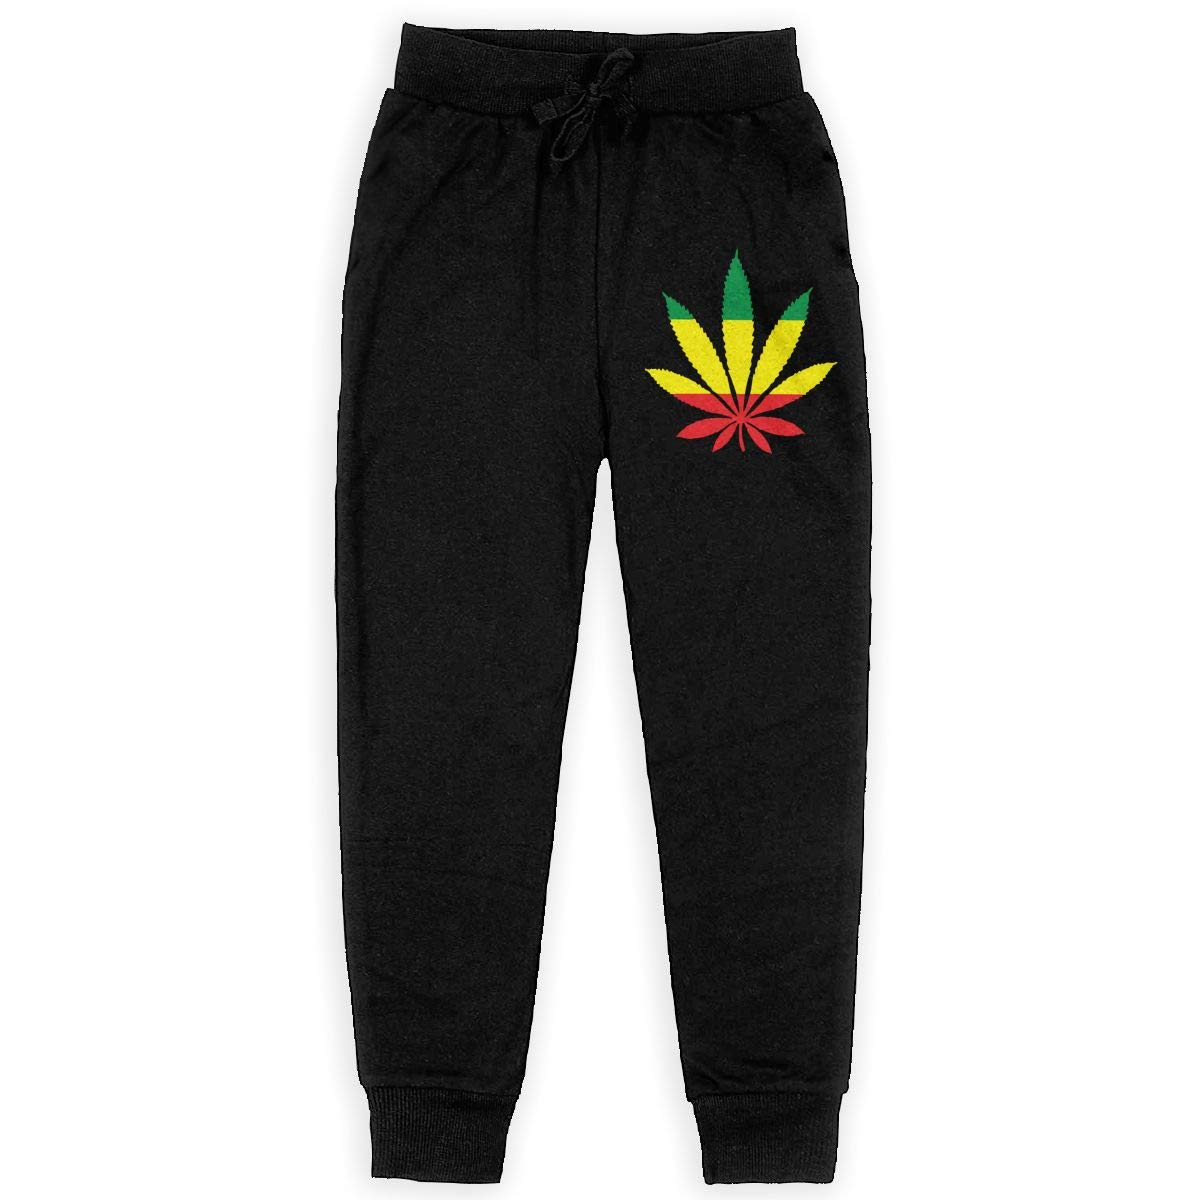 Teenager Active Basic Jogger Fleece Pants for Teen Boy Colorful Weed Leaf Soft//Cozy Sweatpants